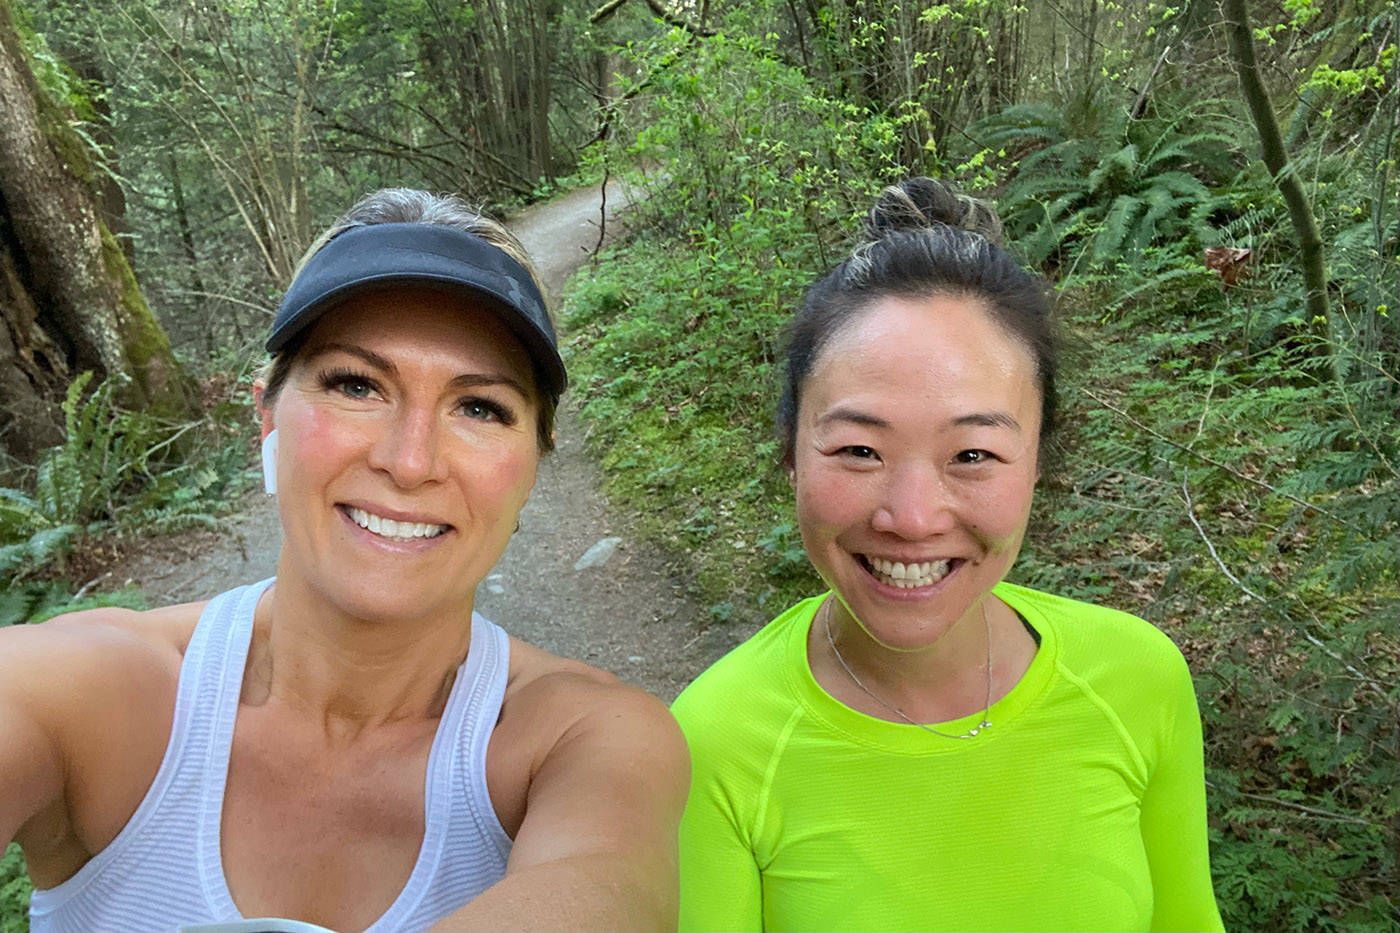 April Migneault of Maple Ridge, seen here with her running friend Hannah Baerg, has run every day in April (and also increased the distance of each run by one kilometre each day) for a total of 465 kilometres in 30 days. It's how she chose to raise money for her friend, Dave Corke of Chilliwack, who has leukaemia. (Facebook/ April Migneault)